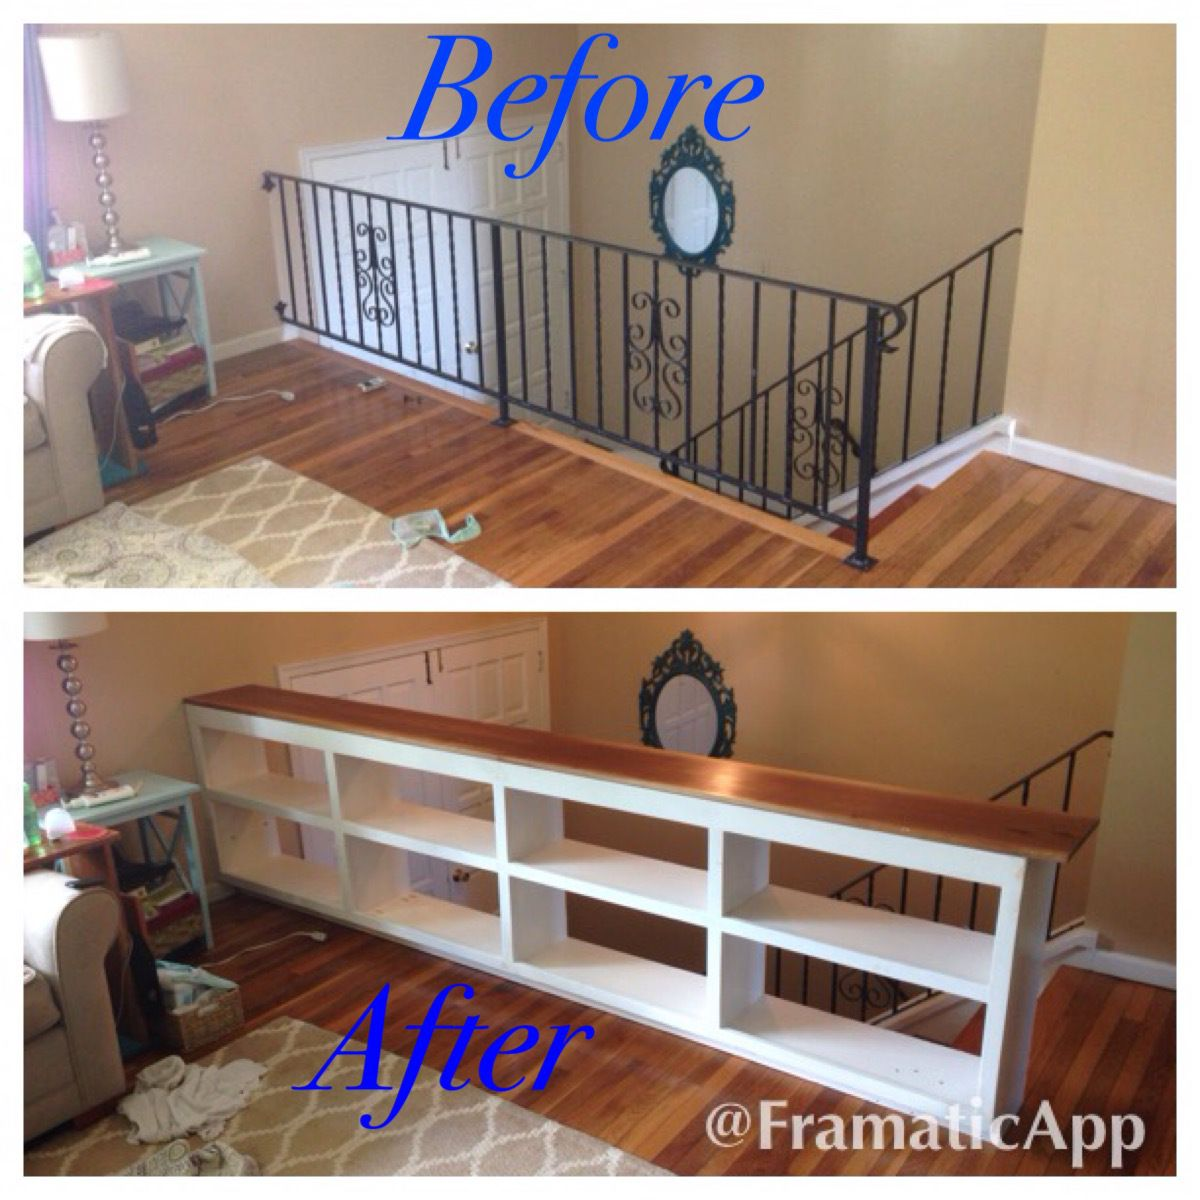 Bookcase Stair Railing Railing Replaced With Custom Bookshelf With Solid Walnut